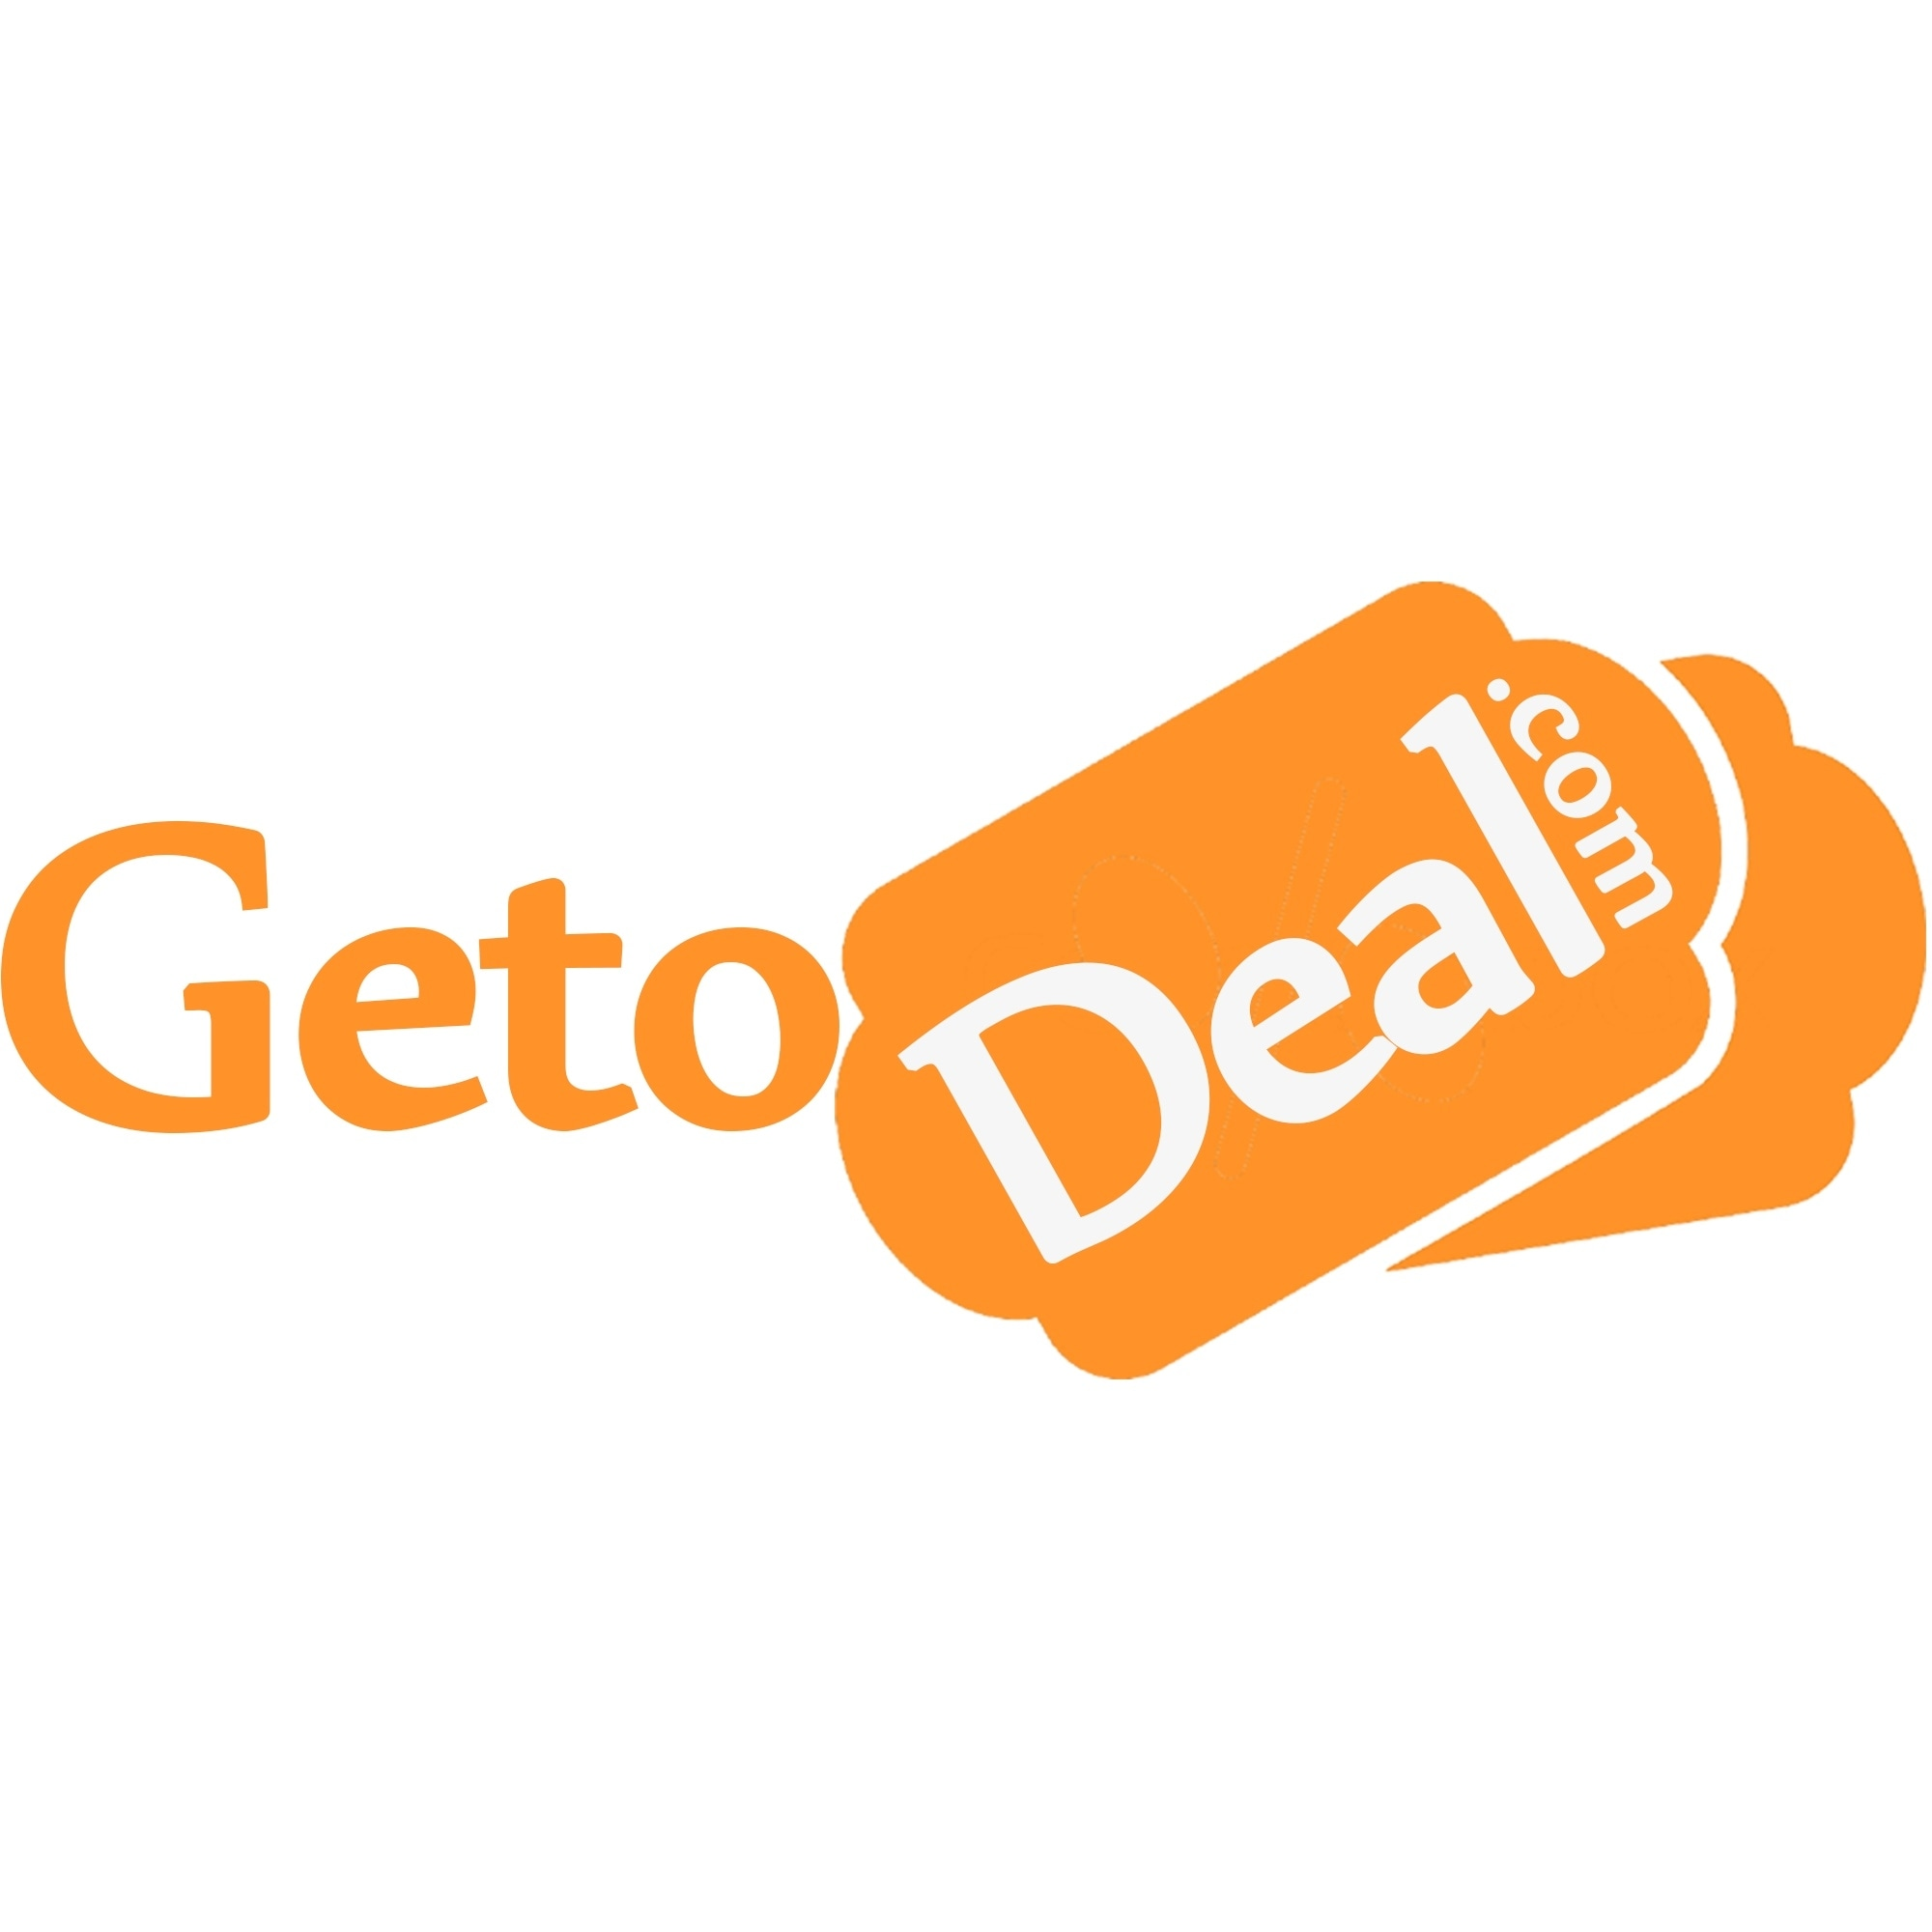 Deal validated by @Getodeal